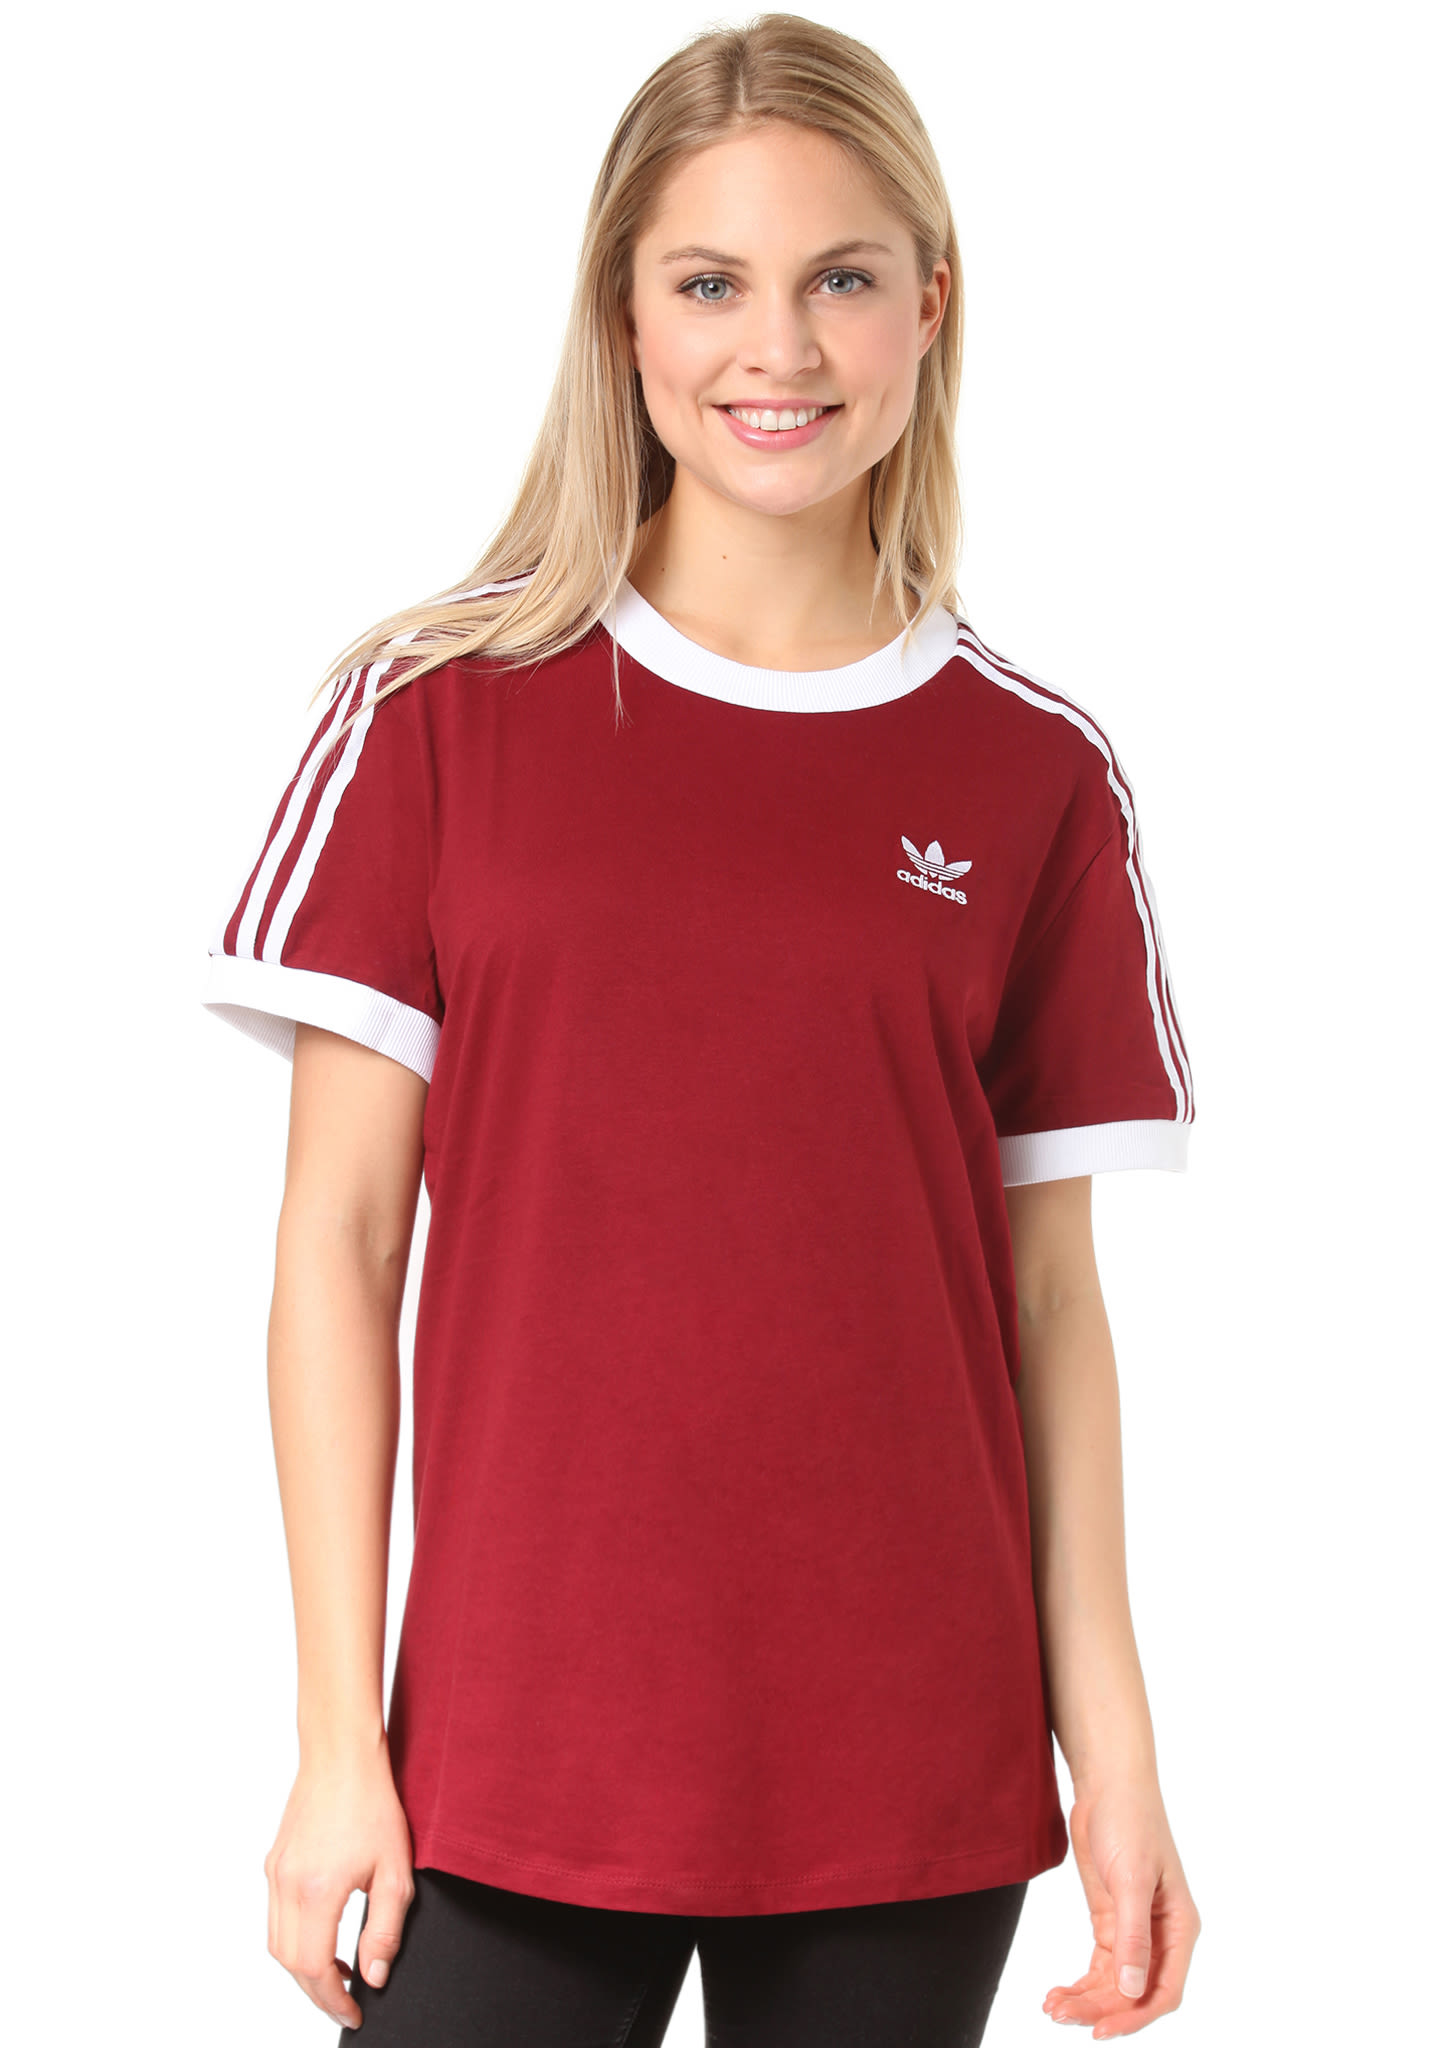 Adidas 3 Stripe Red Womens T Shirt | RLDM